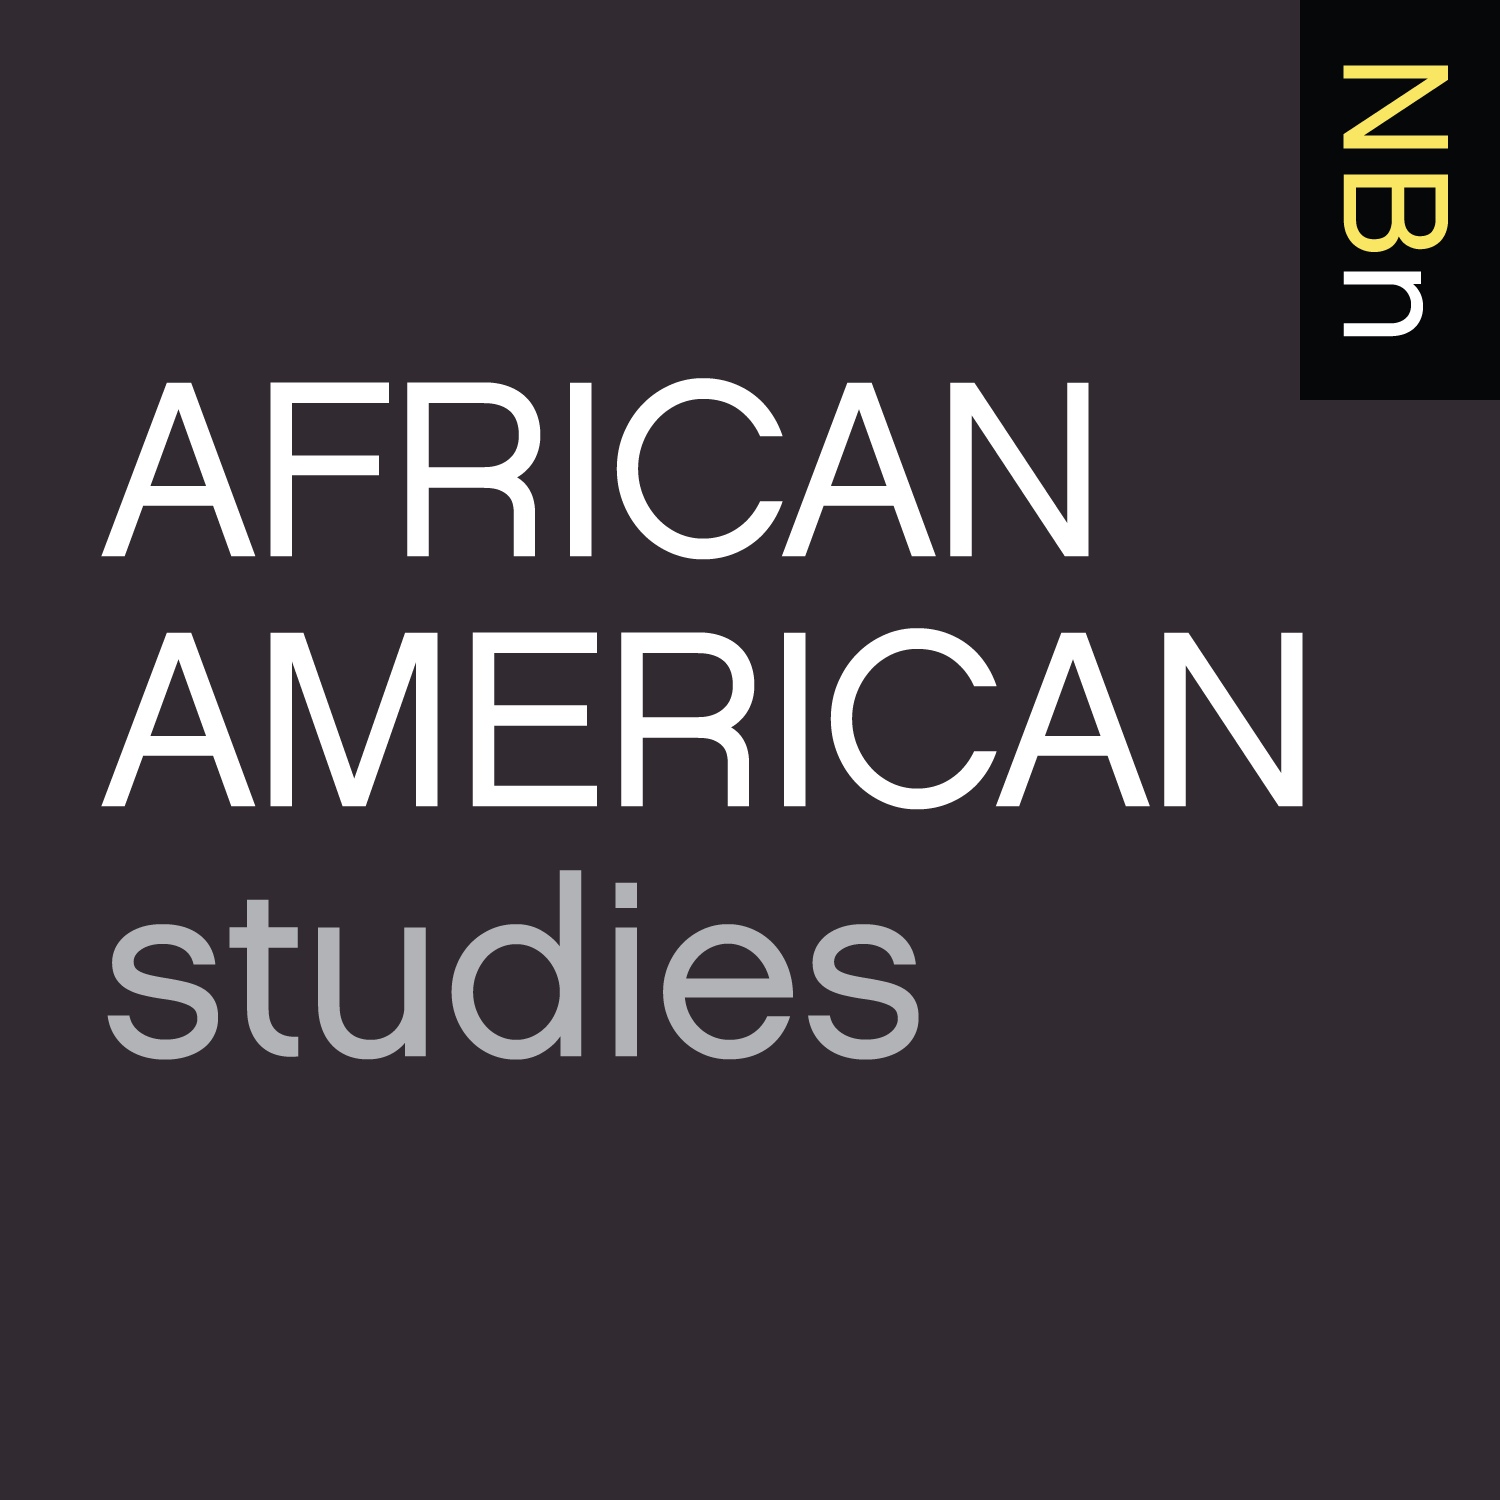 New Books in African American Studies podcast tile